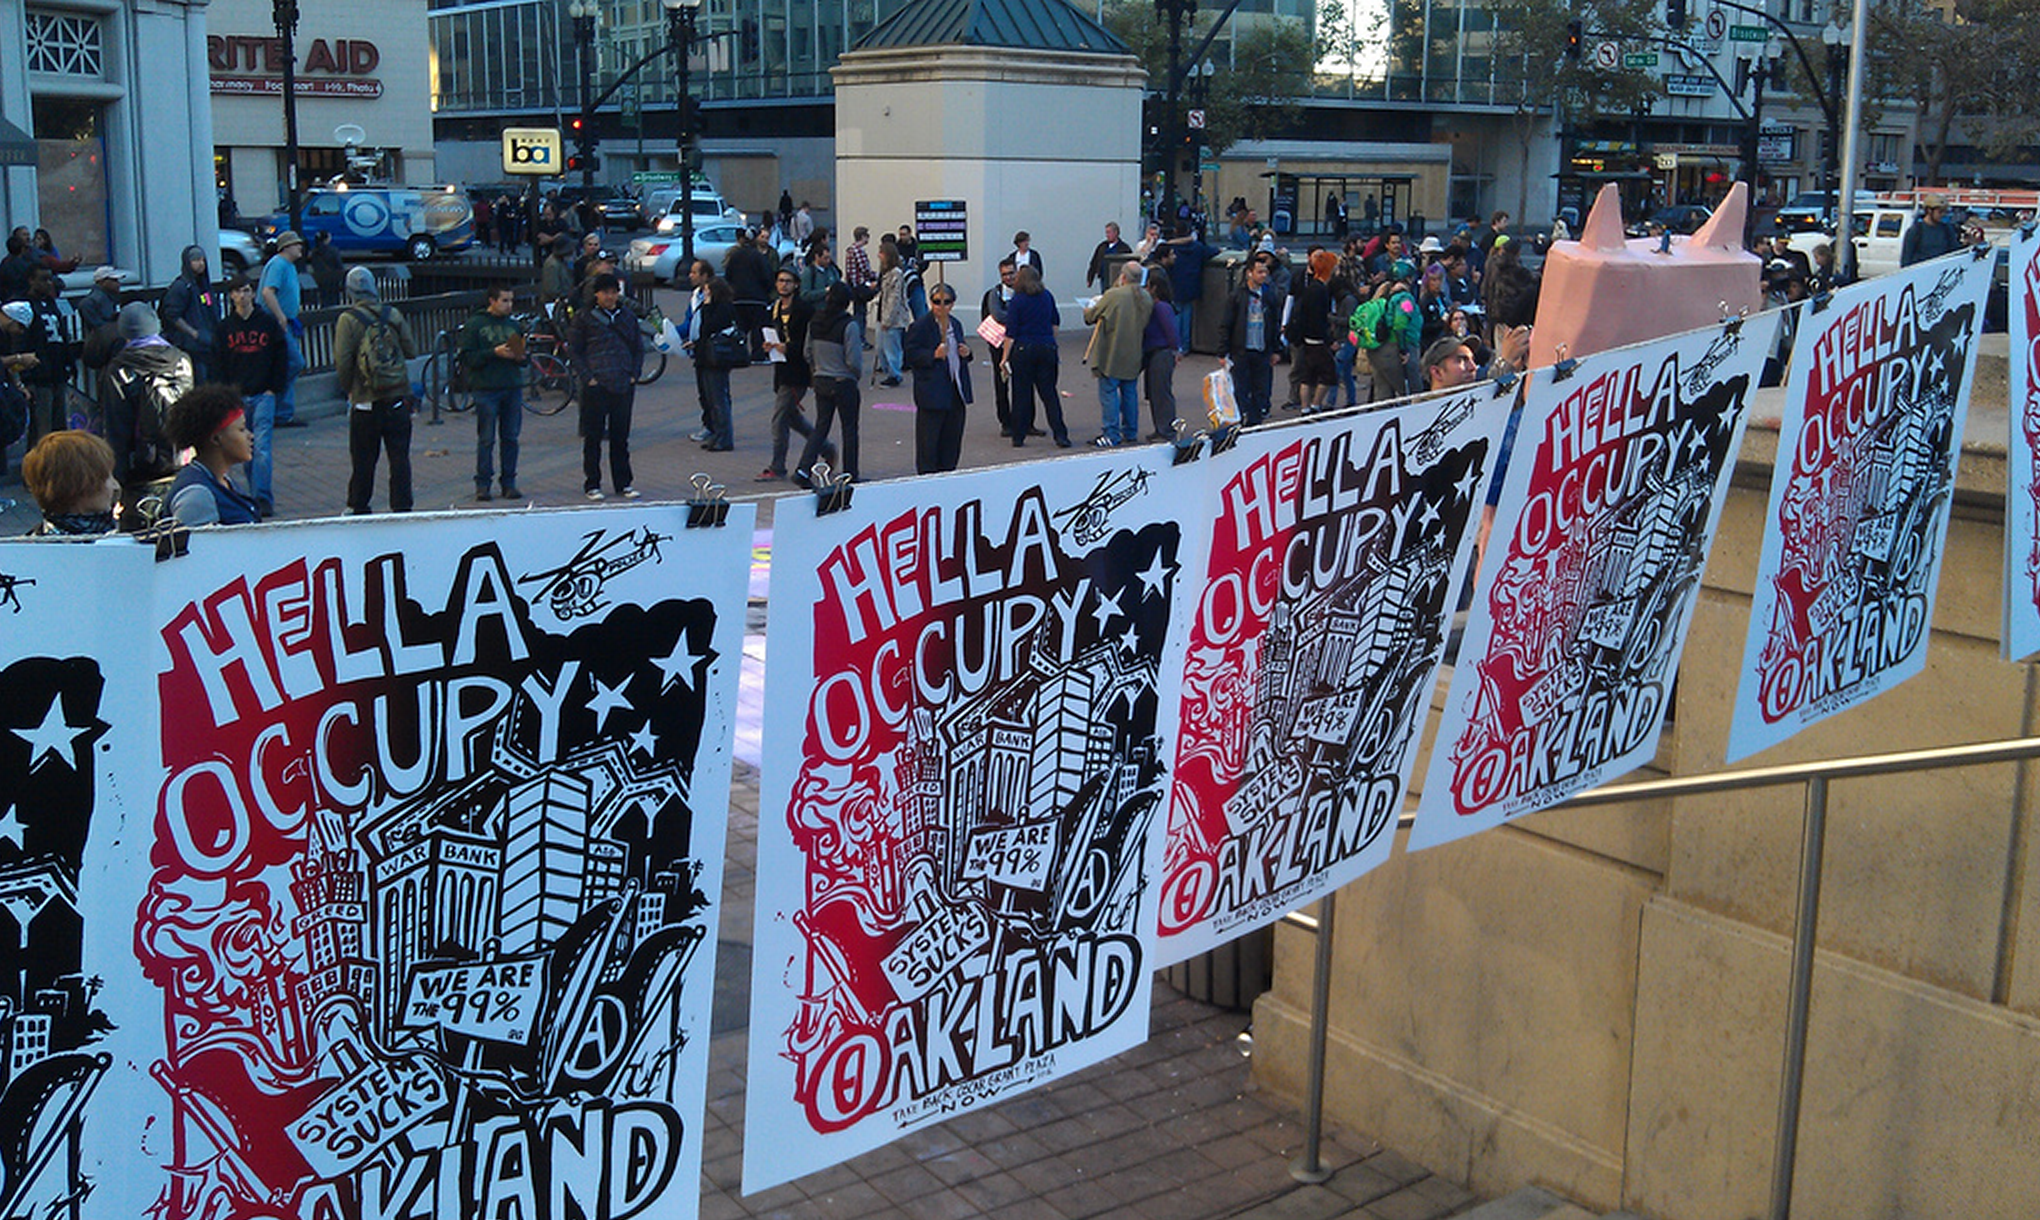 The scene at Frank Ogawa Plaza late Thursday afternoon. Andrew Stelzer/KQED